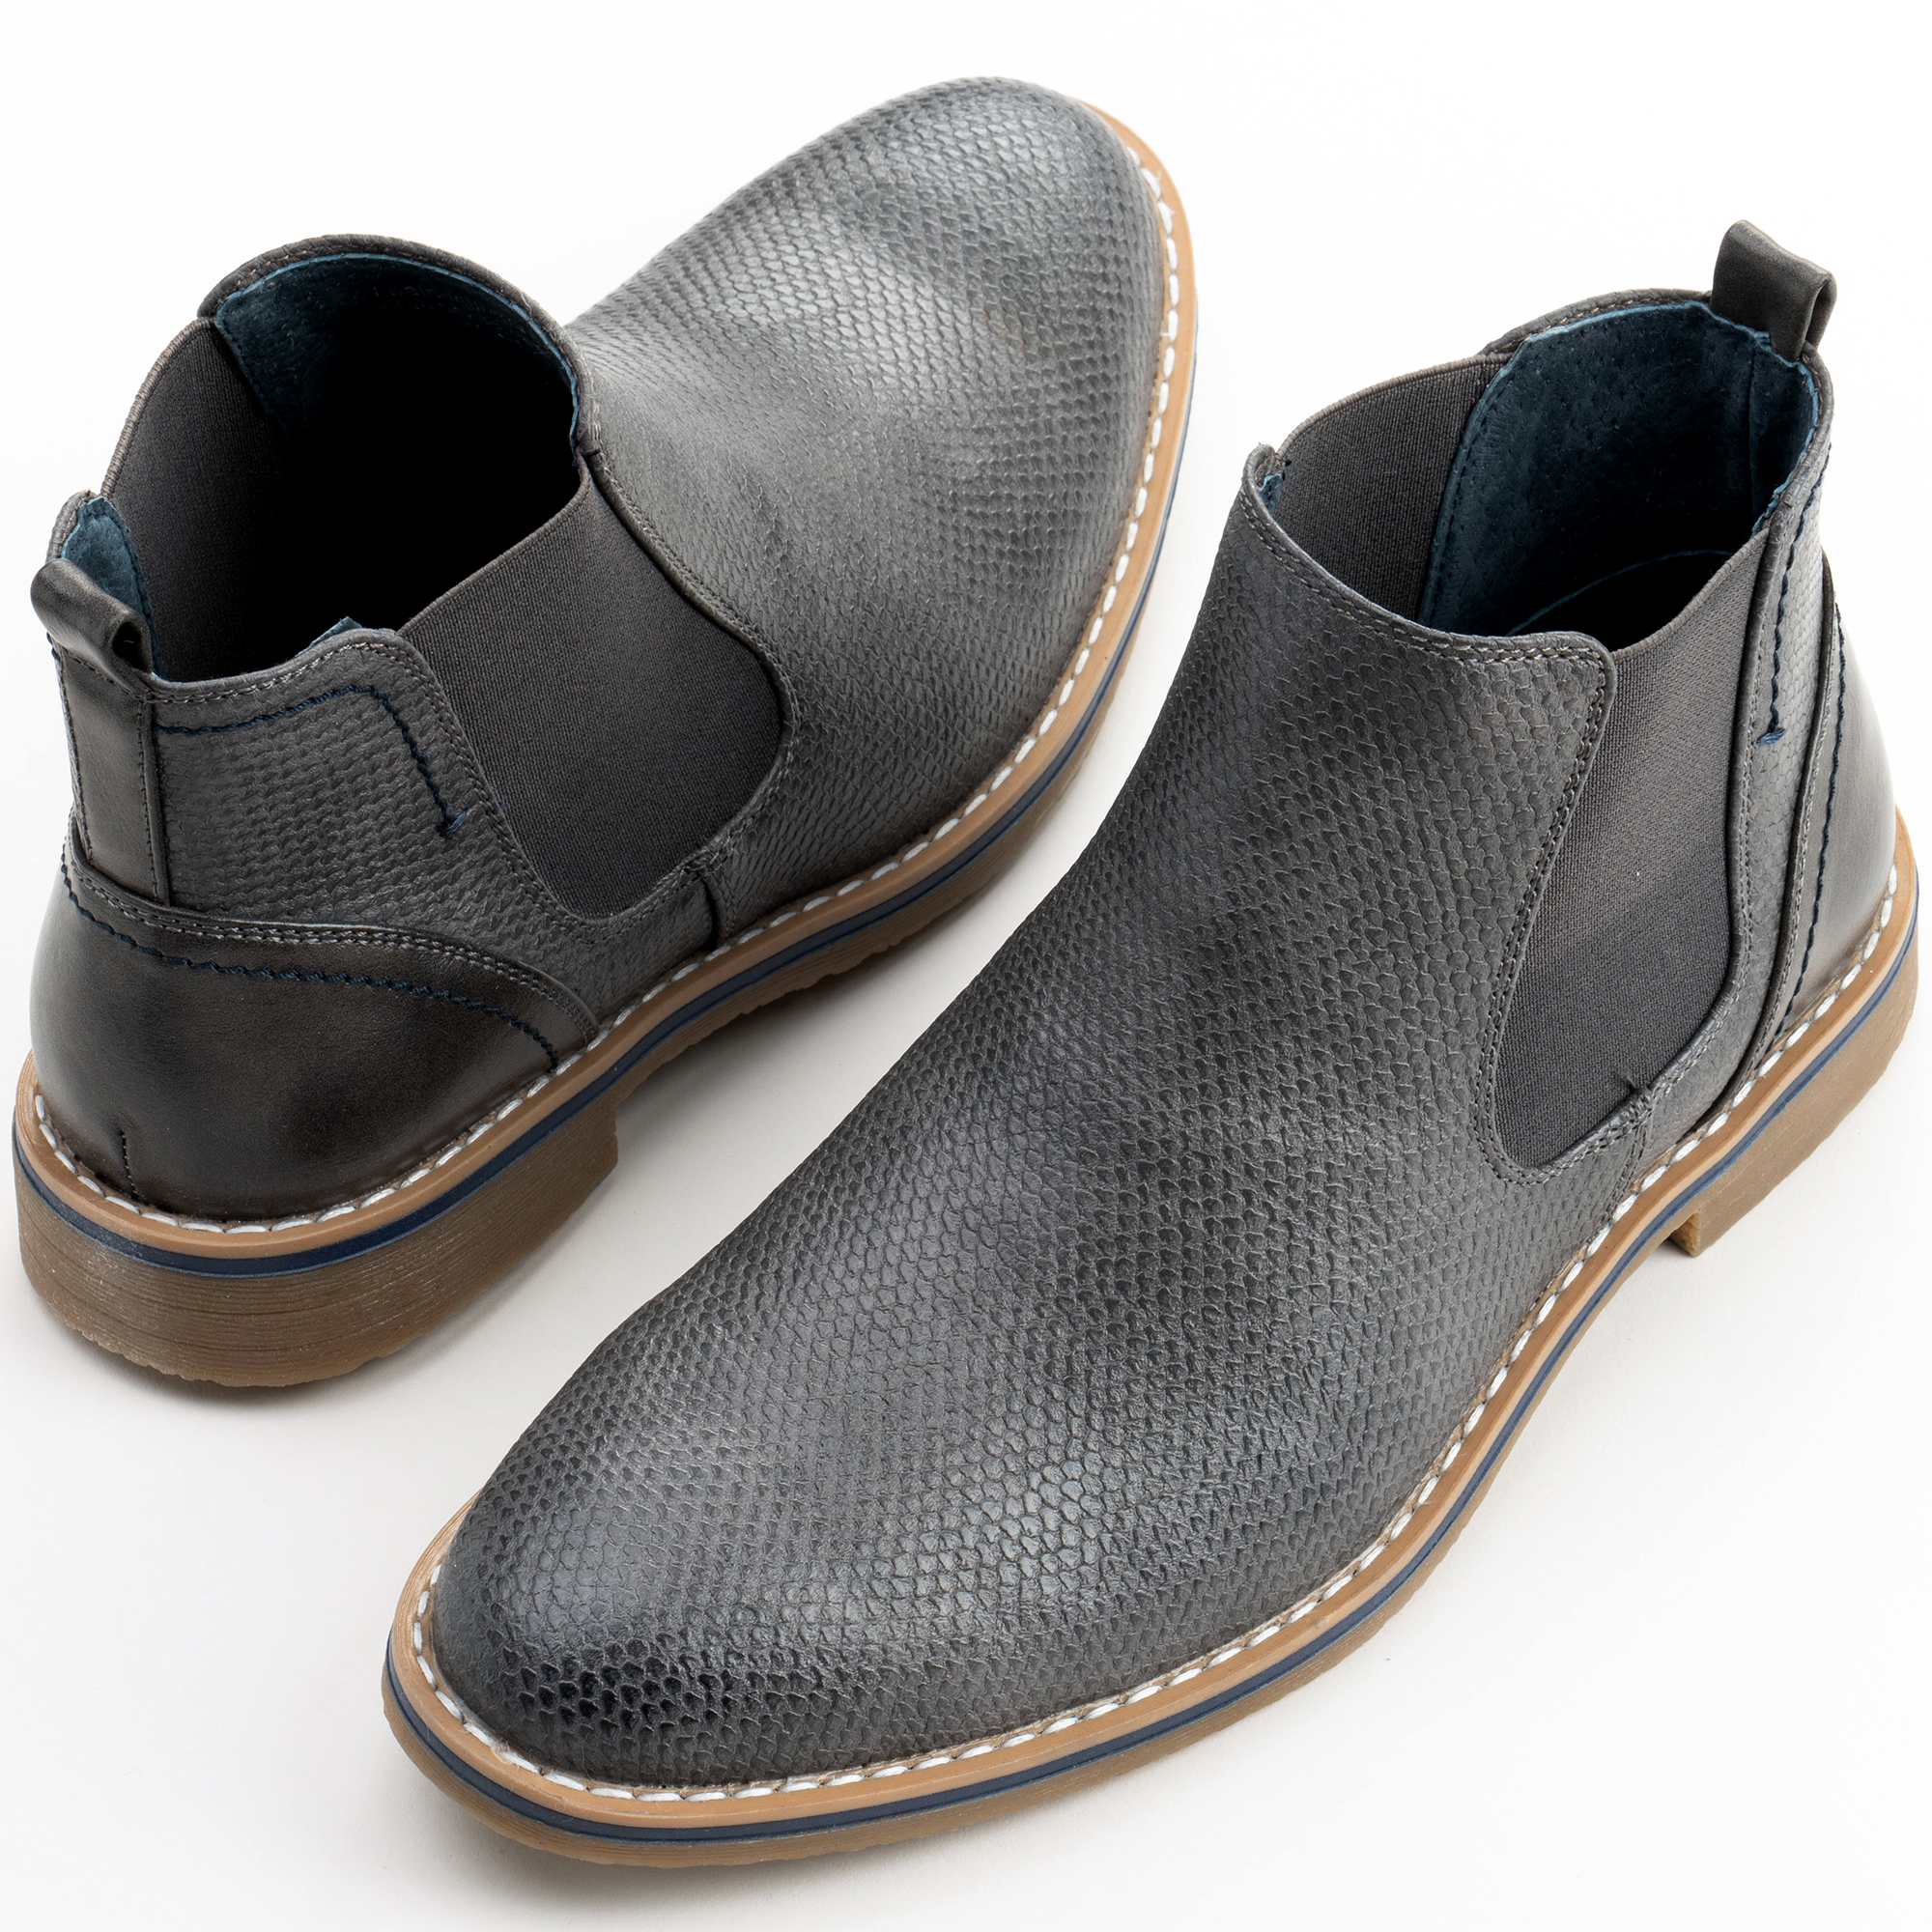 Alpine-Swiss-Mens-Nash-Chelsea-Boots-Snakeskin-Ankle-Boot-Genuine-Leather-Lined miniature 28